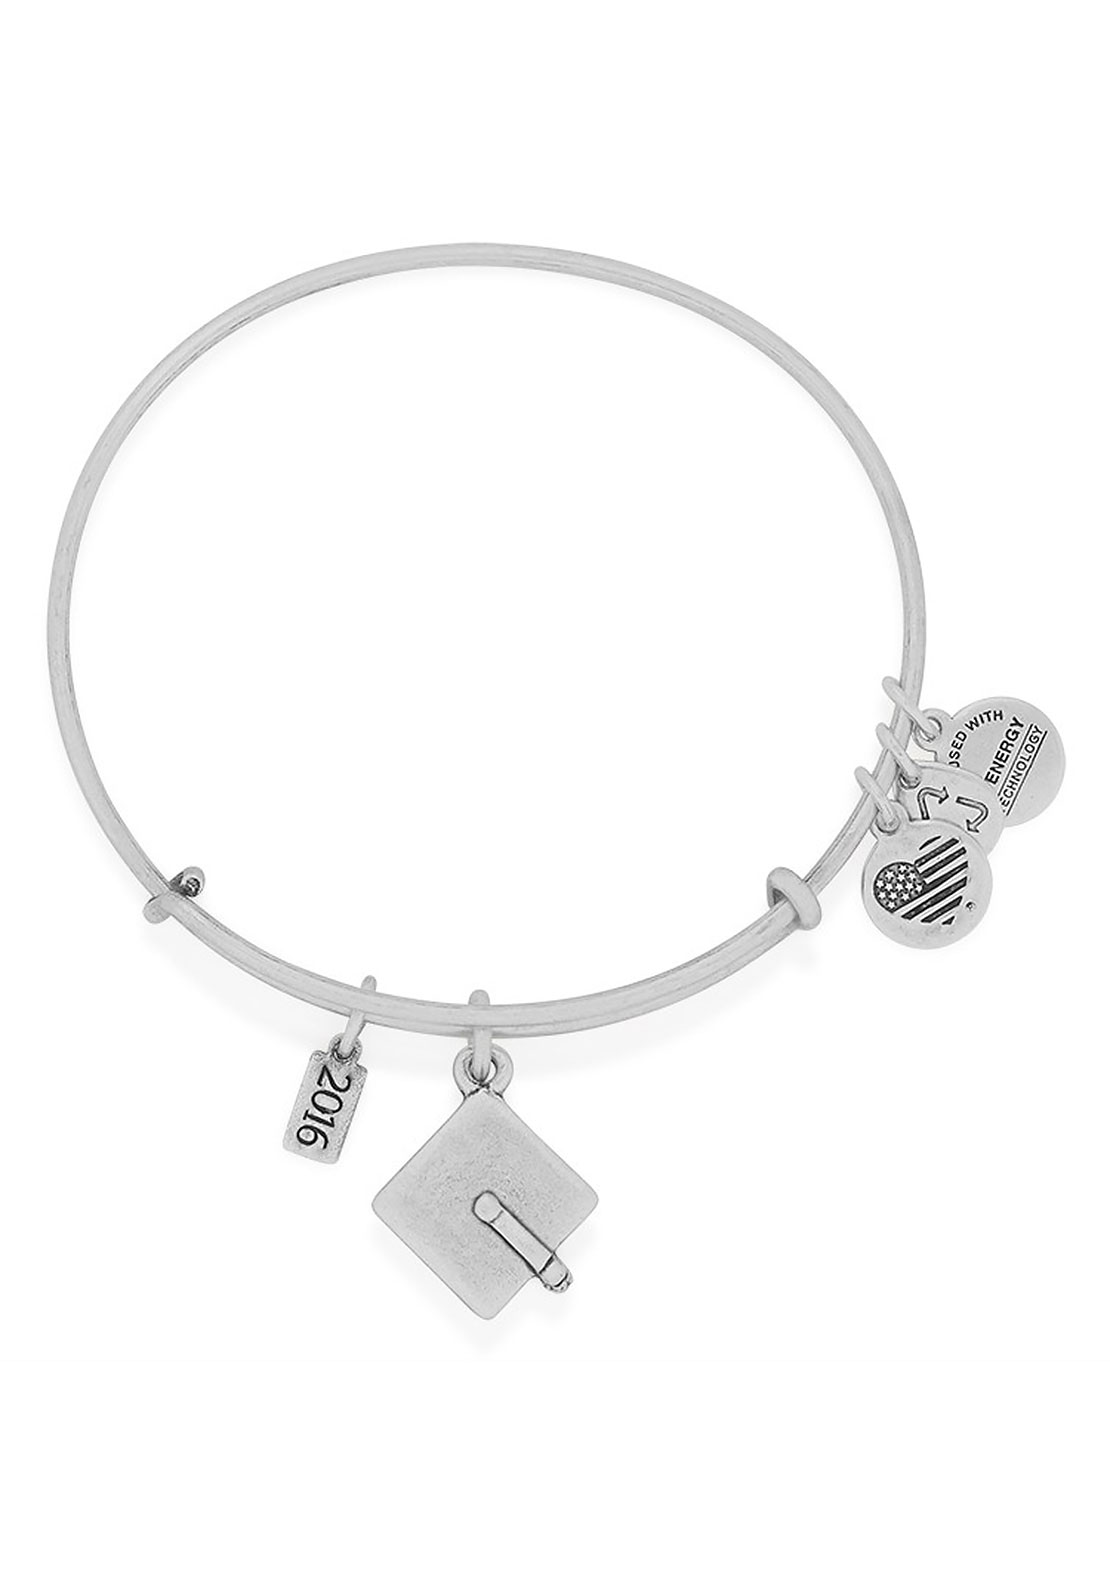 Alex and Ani Graduation Cap Bracelet, Silver